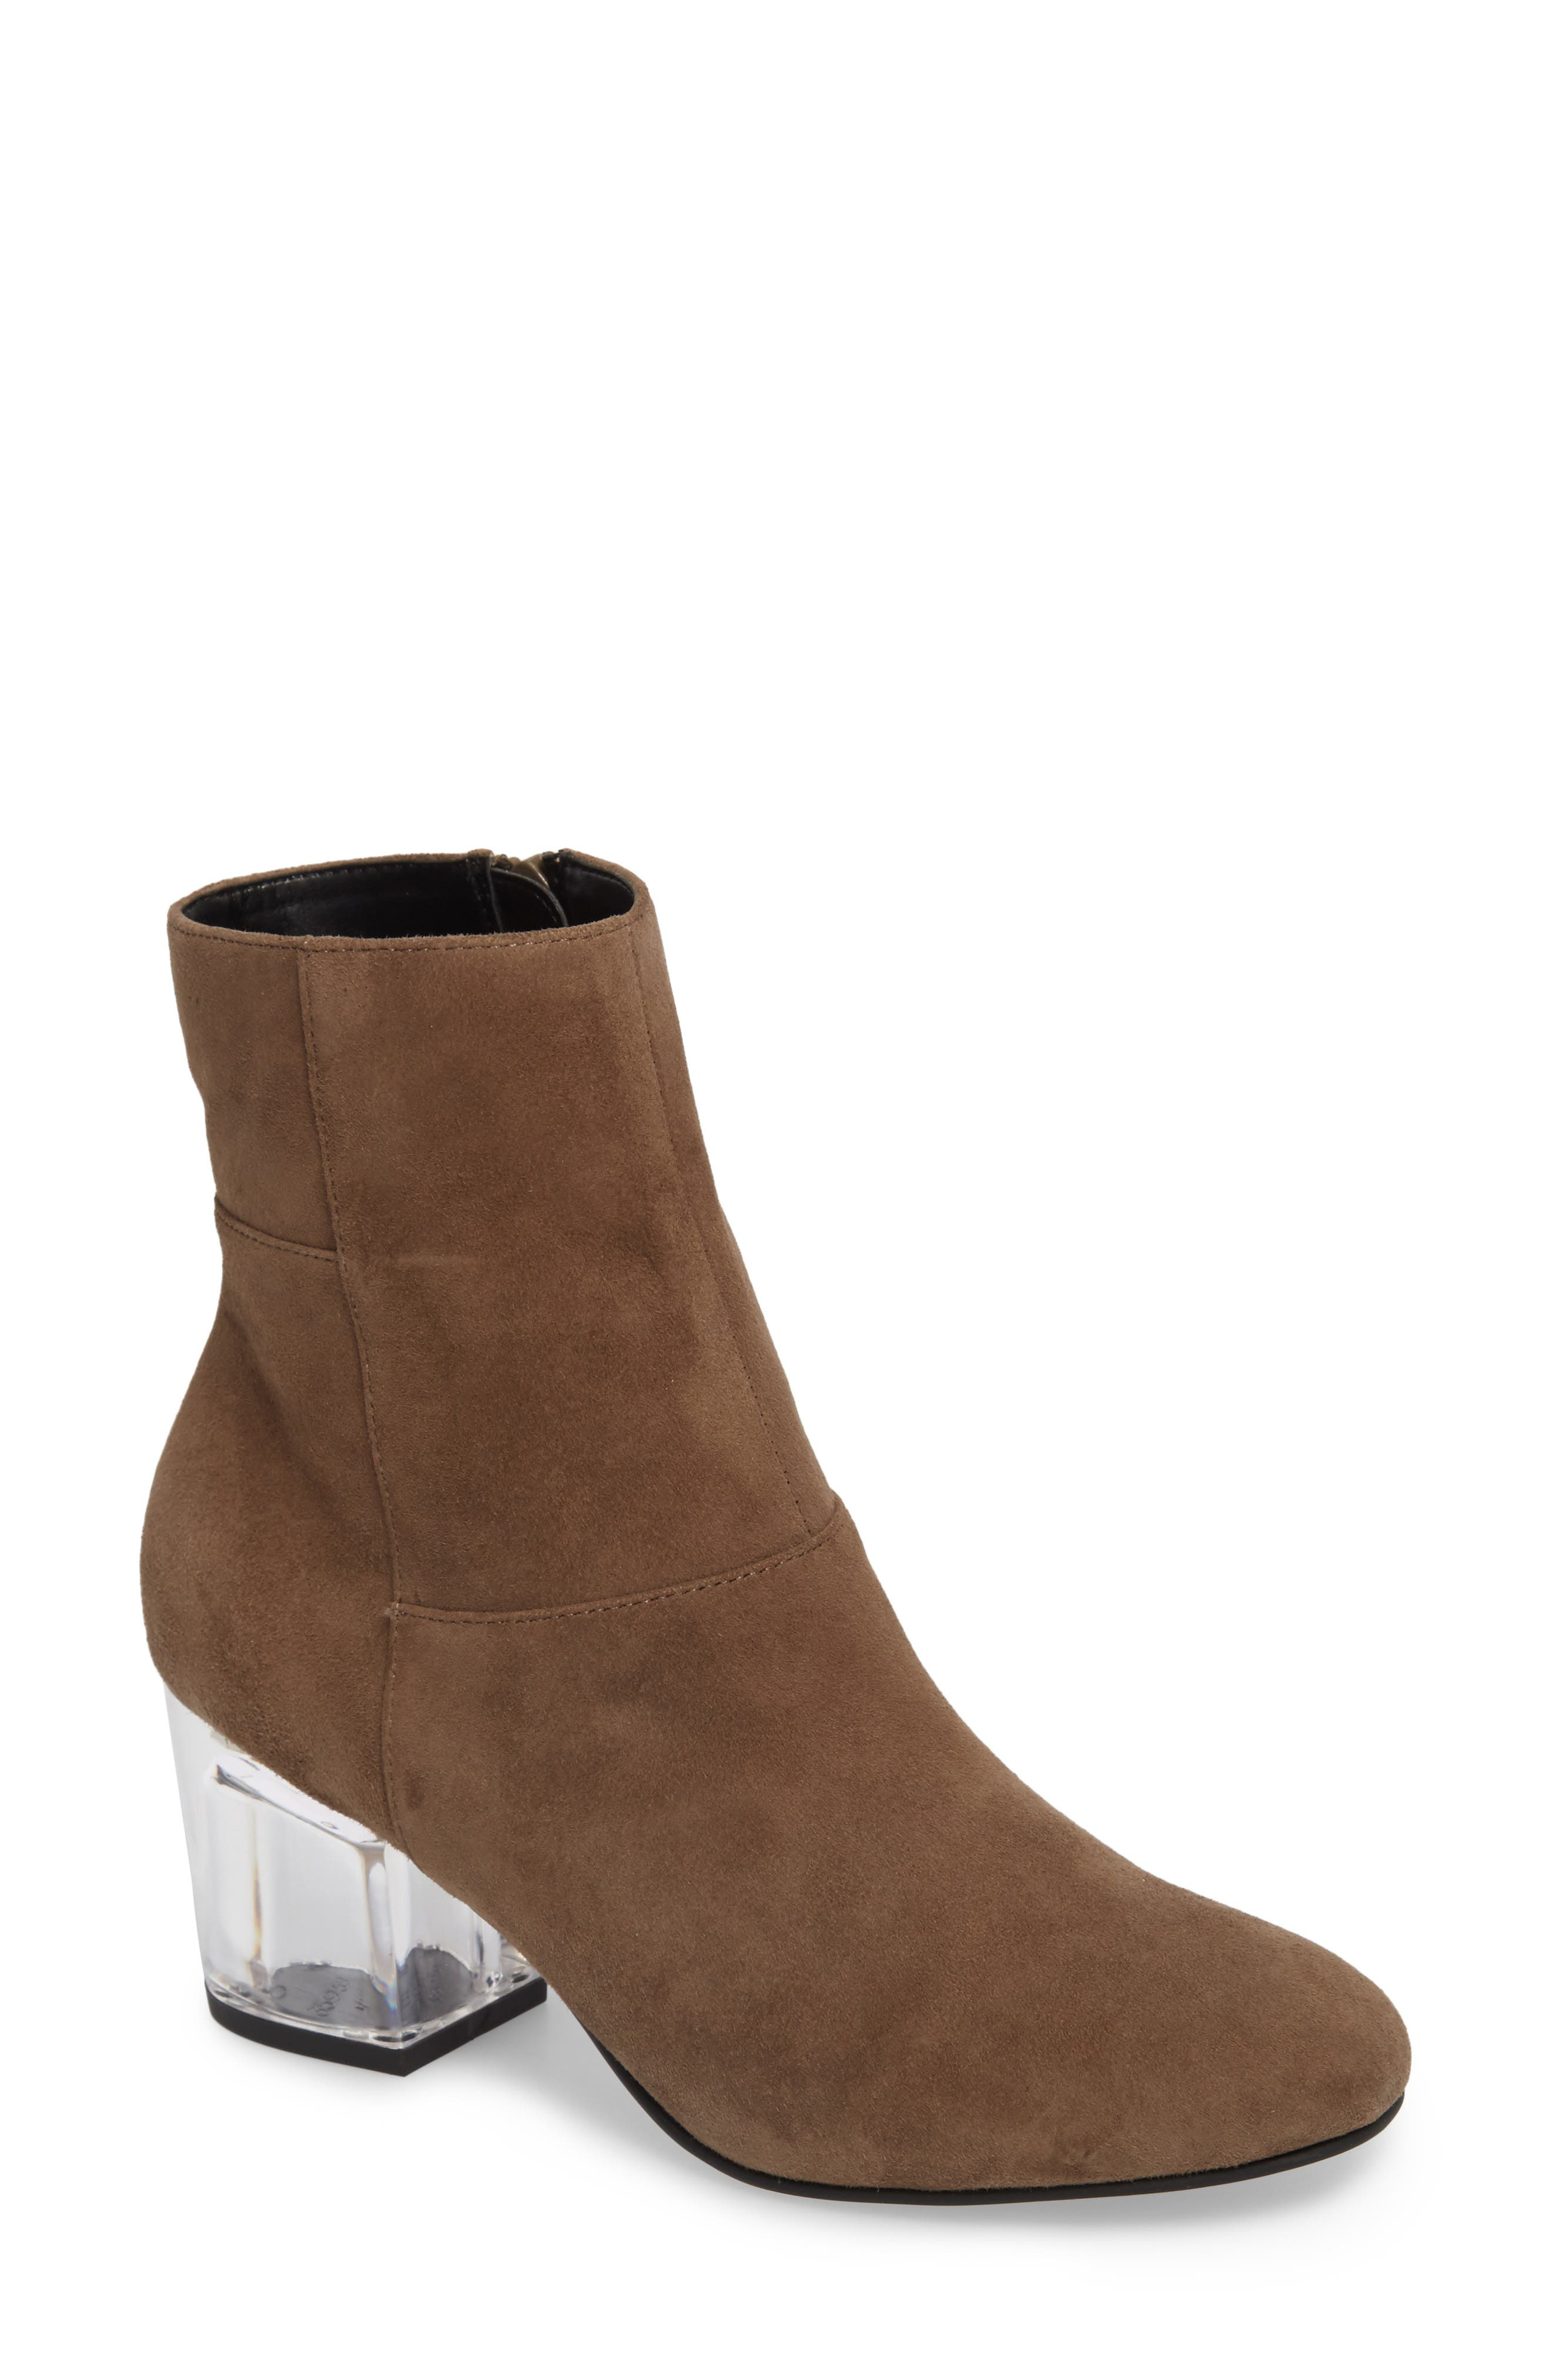 Dinah Bootie,                         Main,                         color, Night Taupe